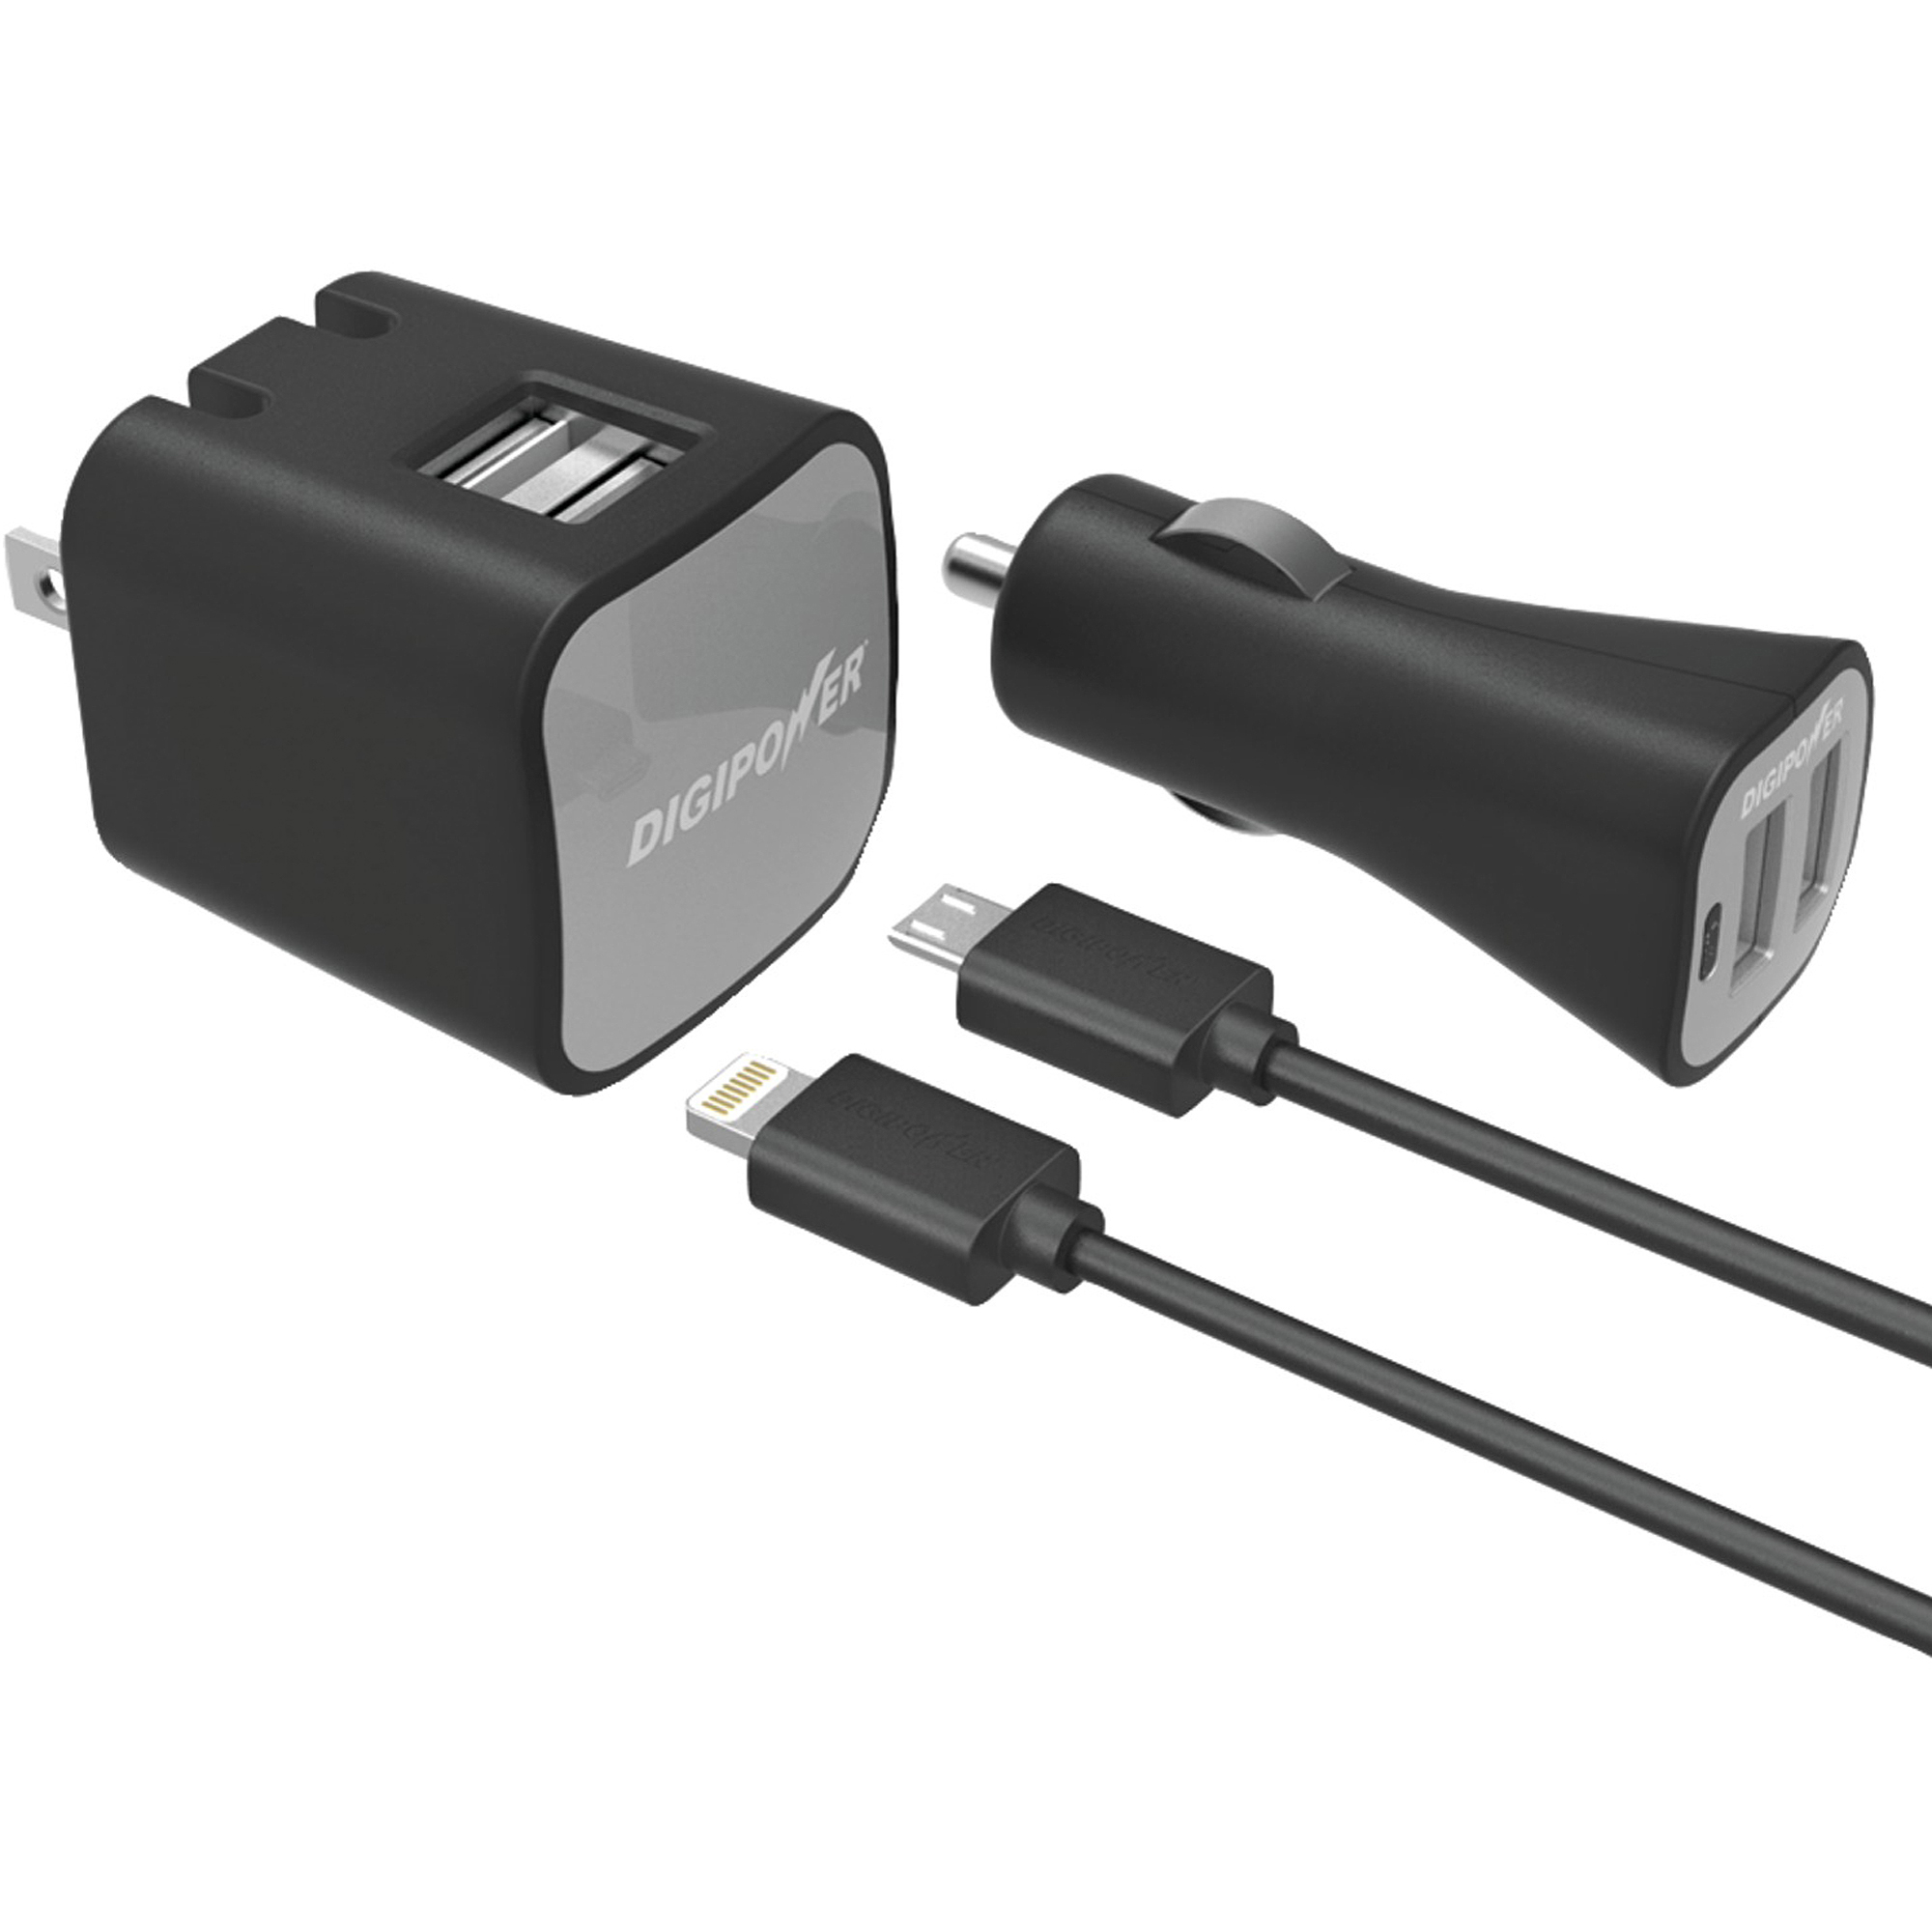 Digipower IS-PK2ML InstaSense 2.4A Dual-Port USB Car Charger and 2.4A 2-Port USB Wall Charger